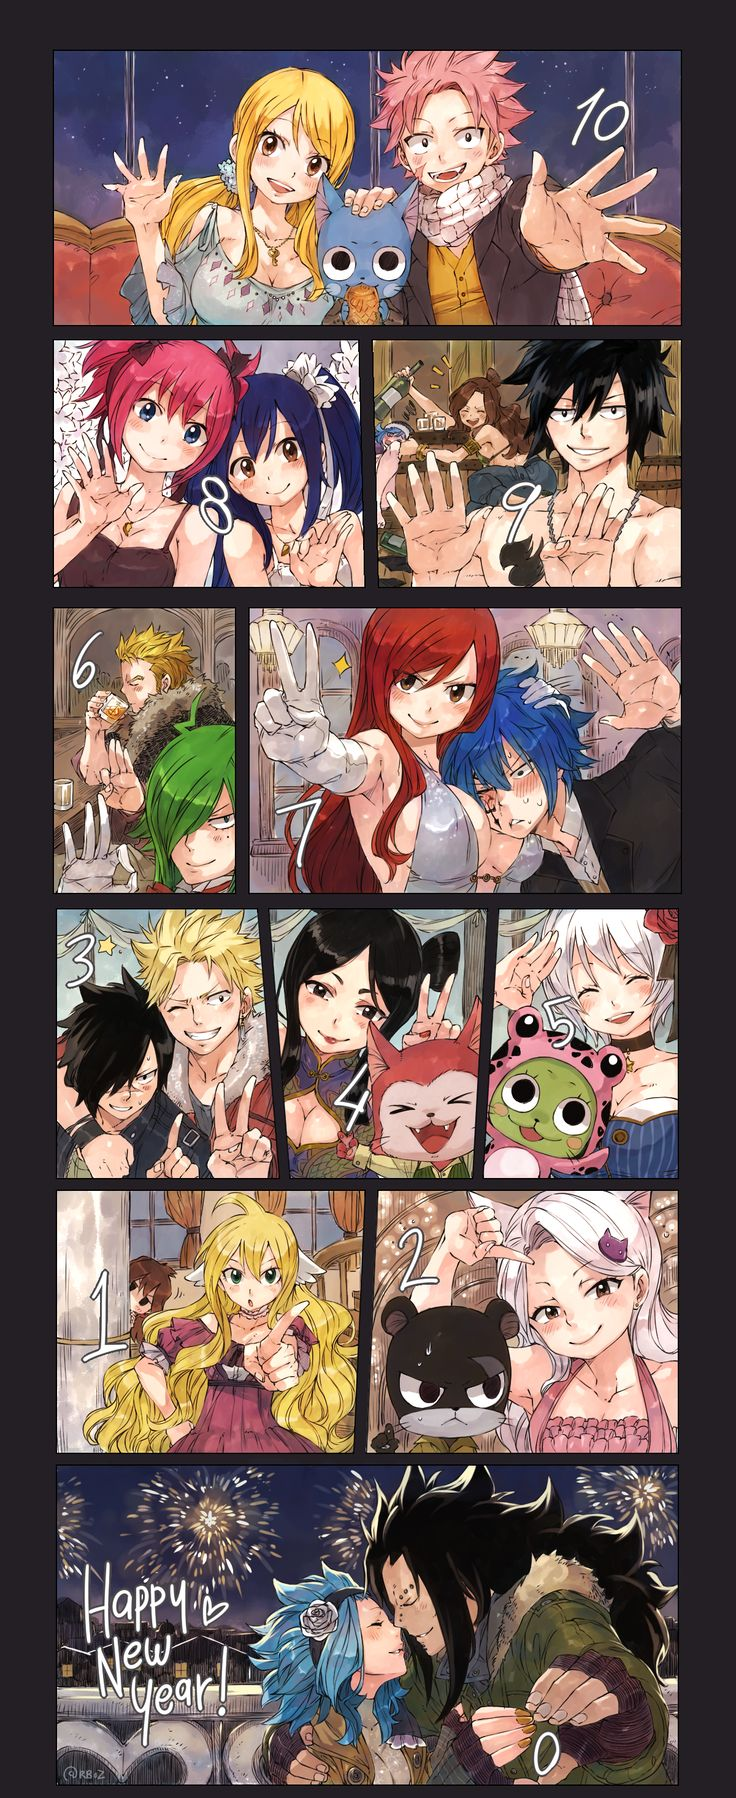 10.9.8.7.6.5.4.3.2.1.0 HAPPY NEW YEAR!!! Love Fairy Tail!' ( Gajeel & Levy are sooo cute))) ❤️